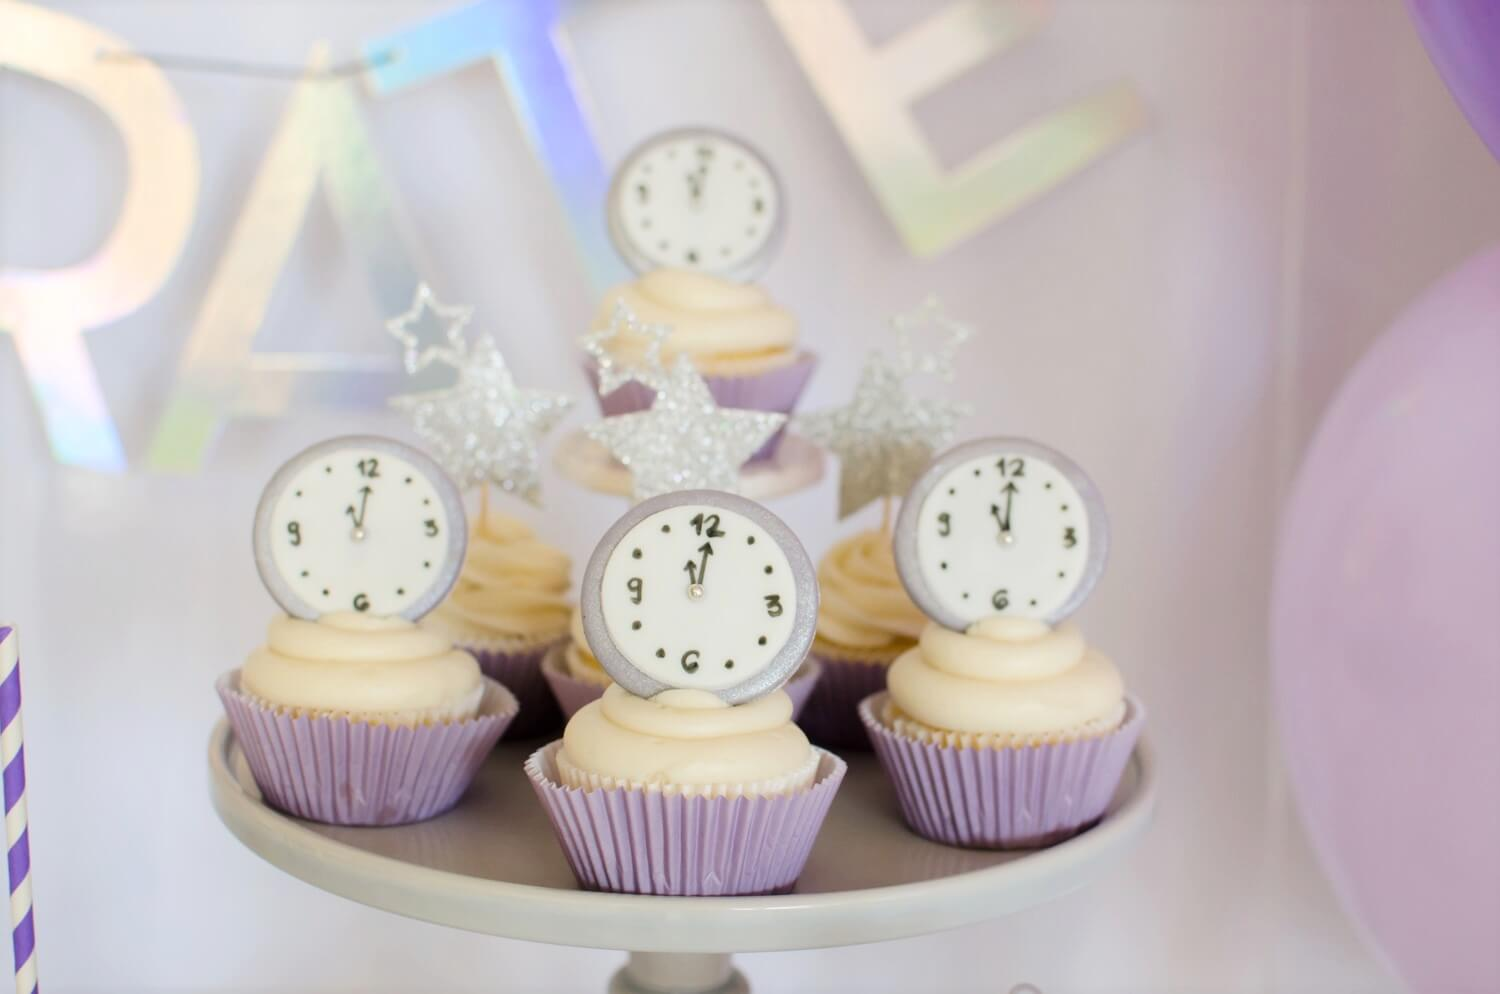 New Years dessert ideas include these awesome cupcakes and a cute toppers